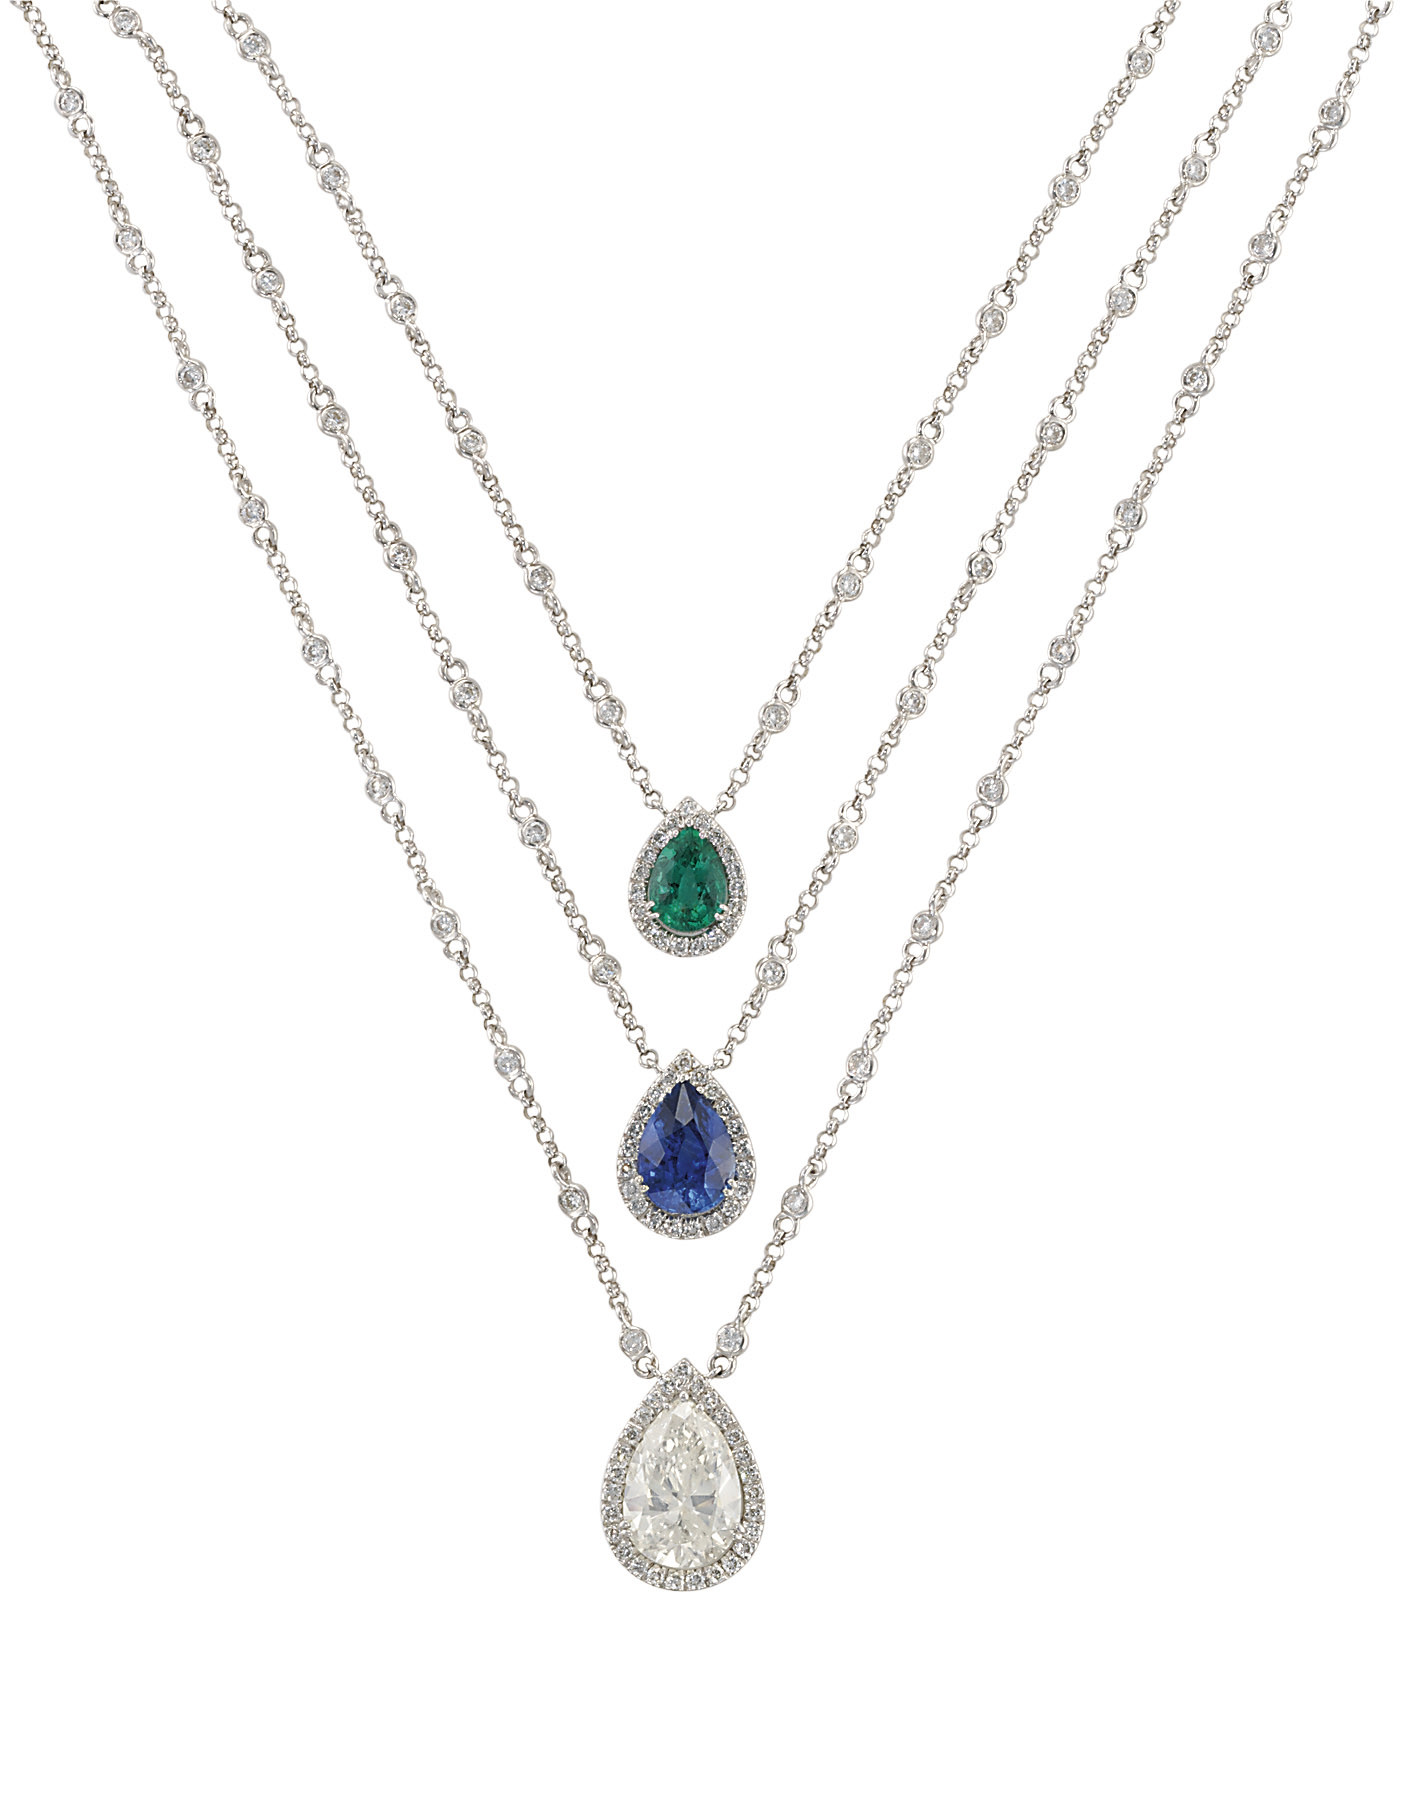 A DIAMOND, SAPPHIRE AND EMERAL